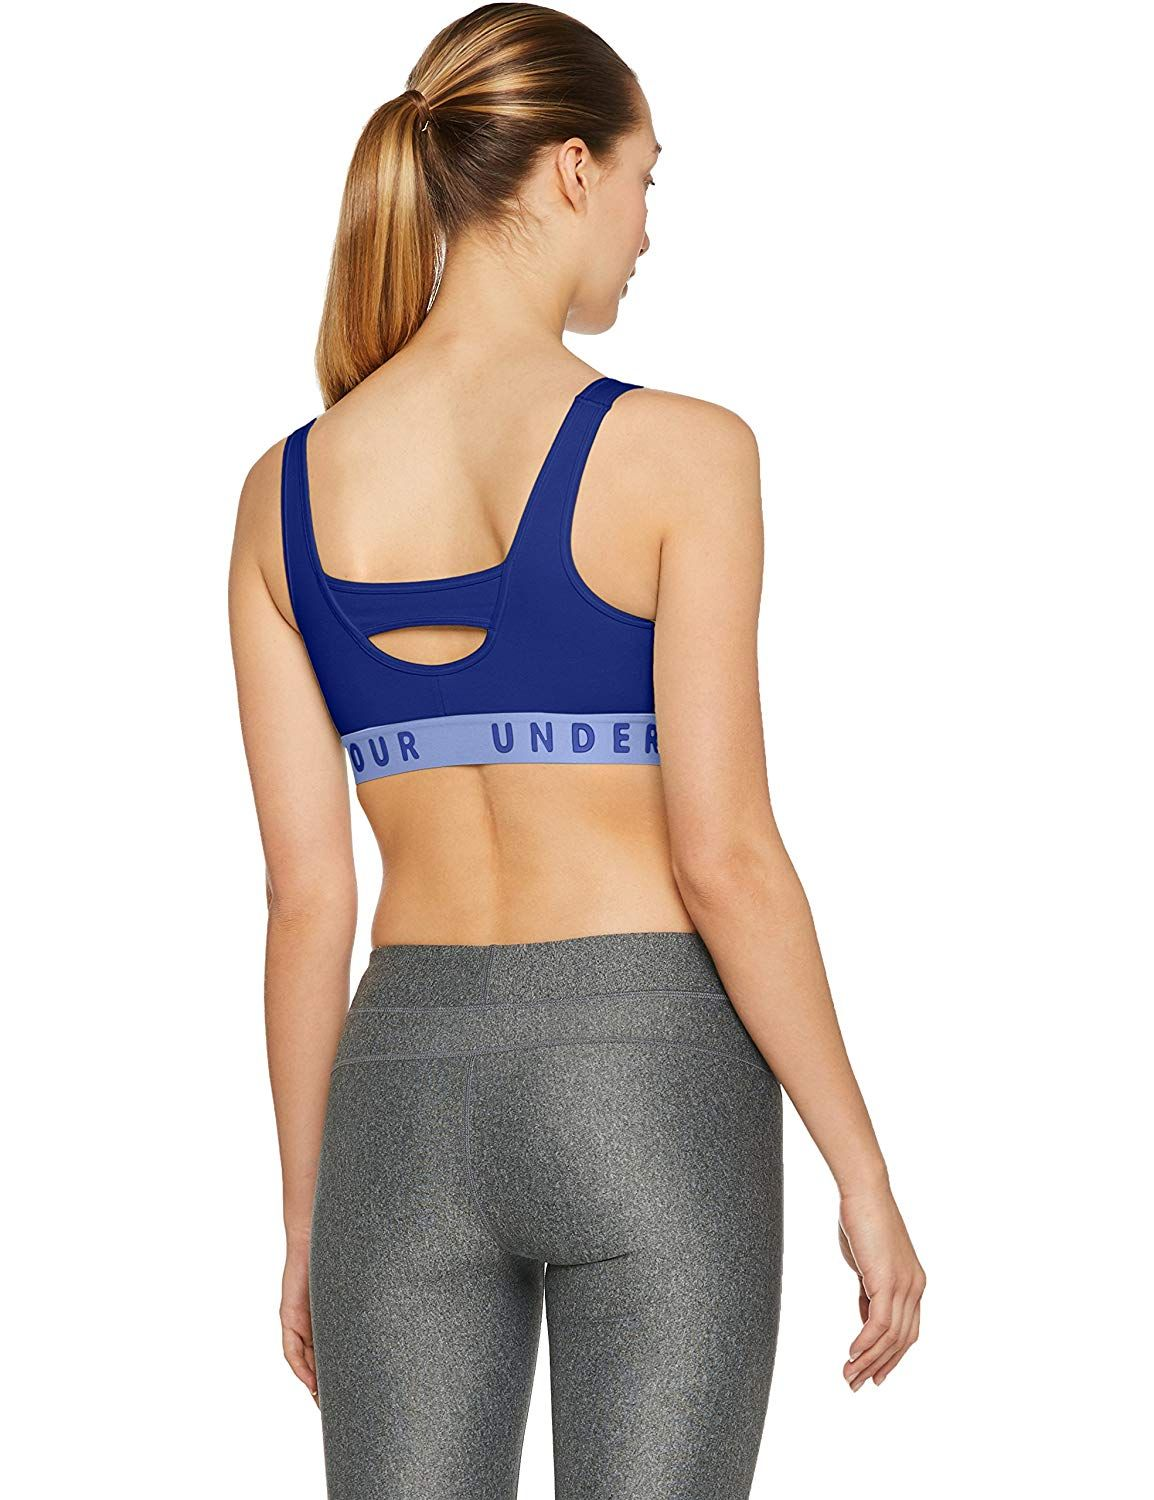 4ebb0a0b367a3 Amazon.com  Under Armour Women s Favorite Cotton Heathered Everyday Sports  Bra  Under Armour  Sports   Outdoors